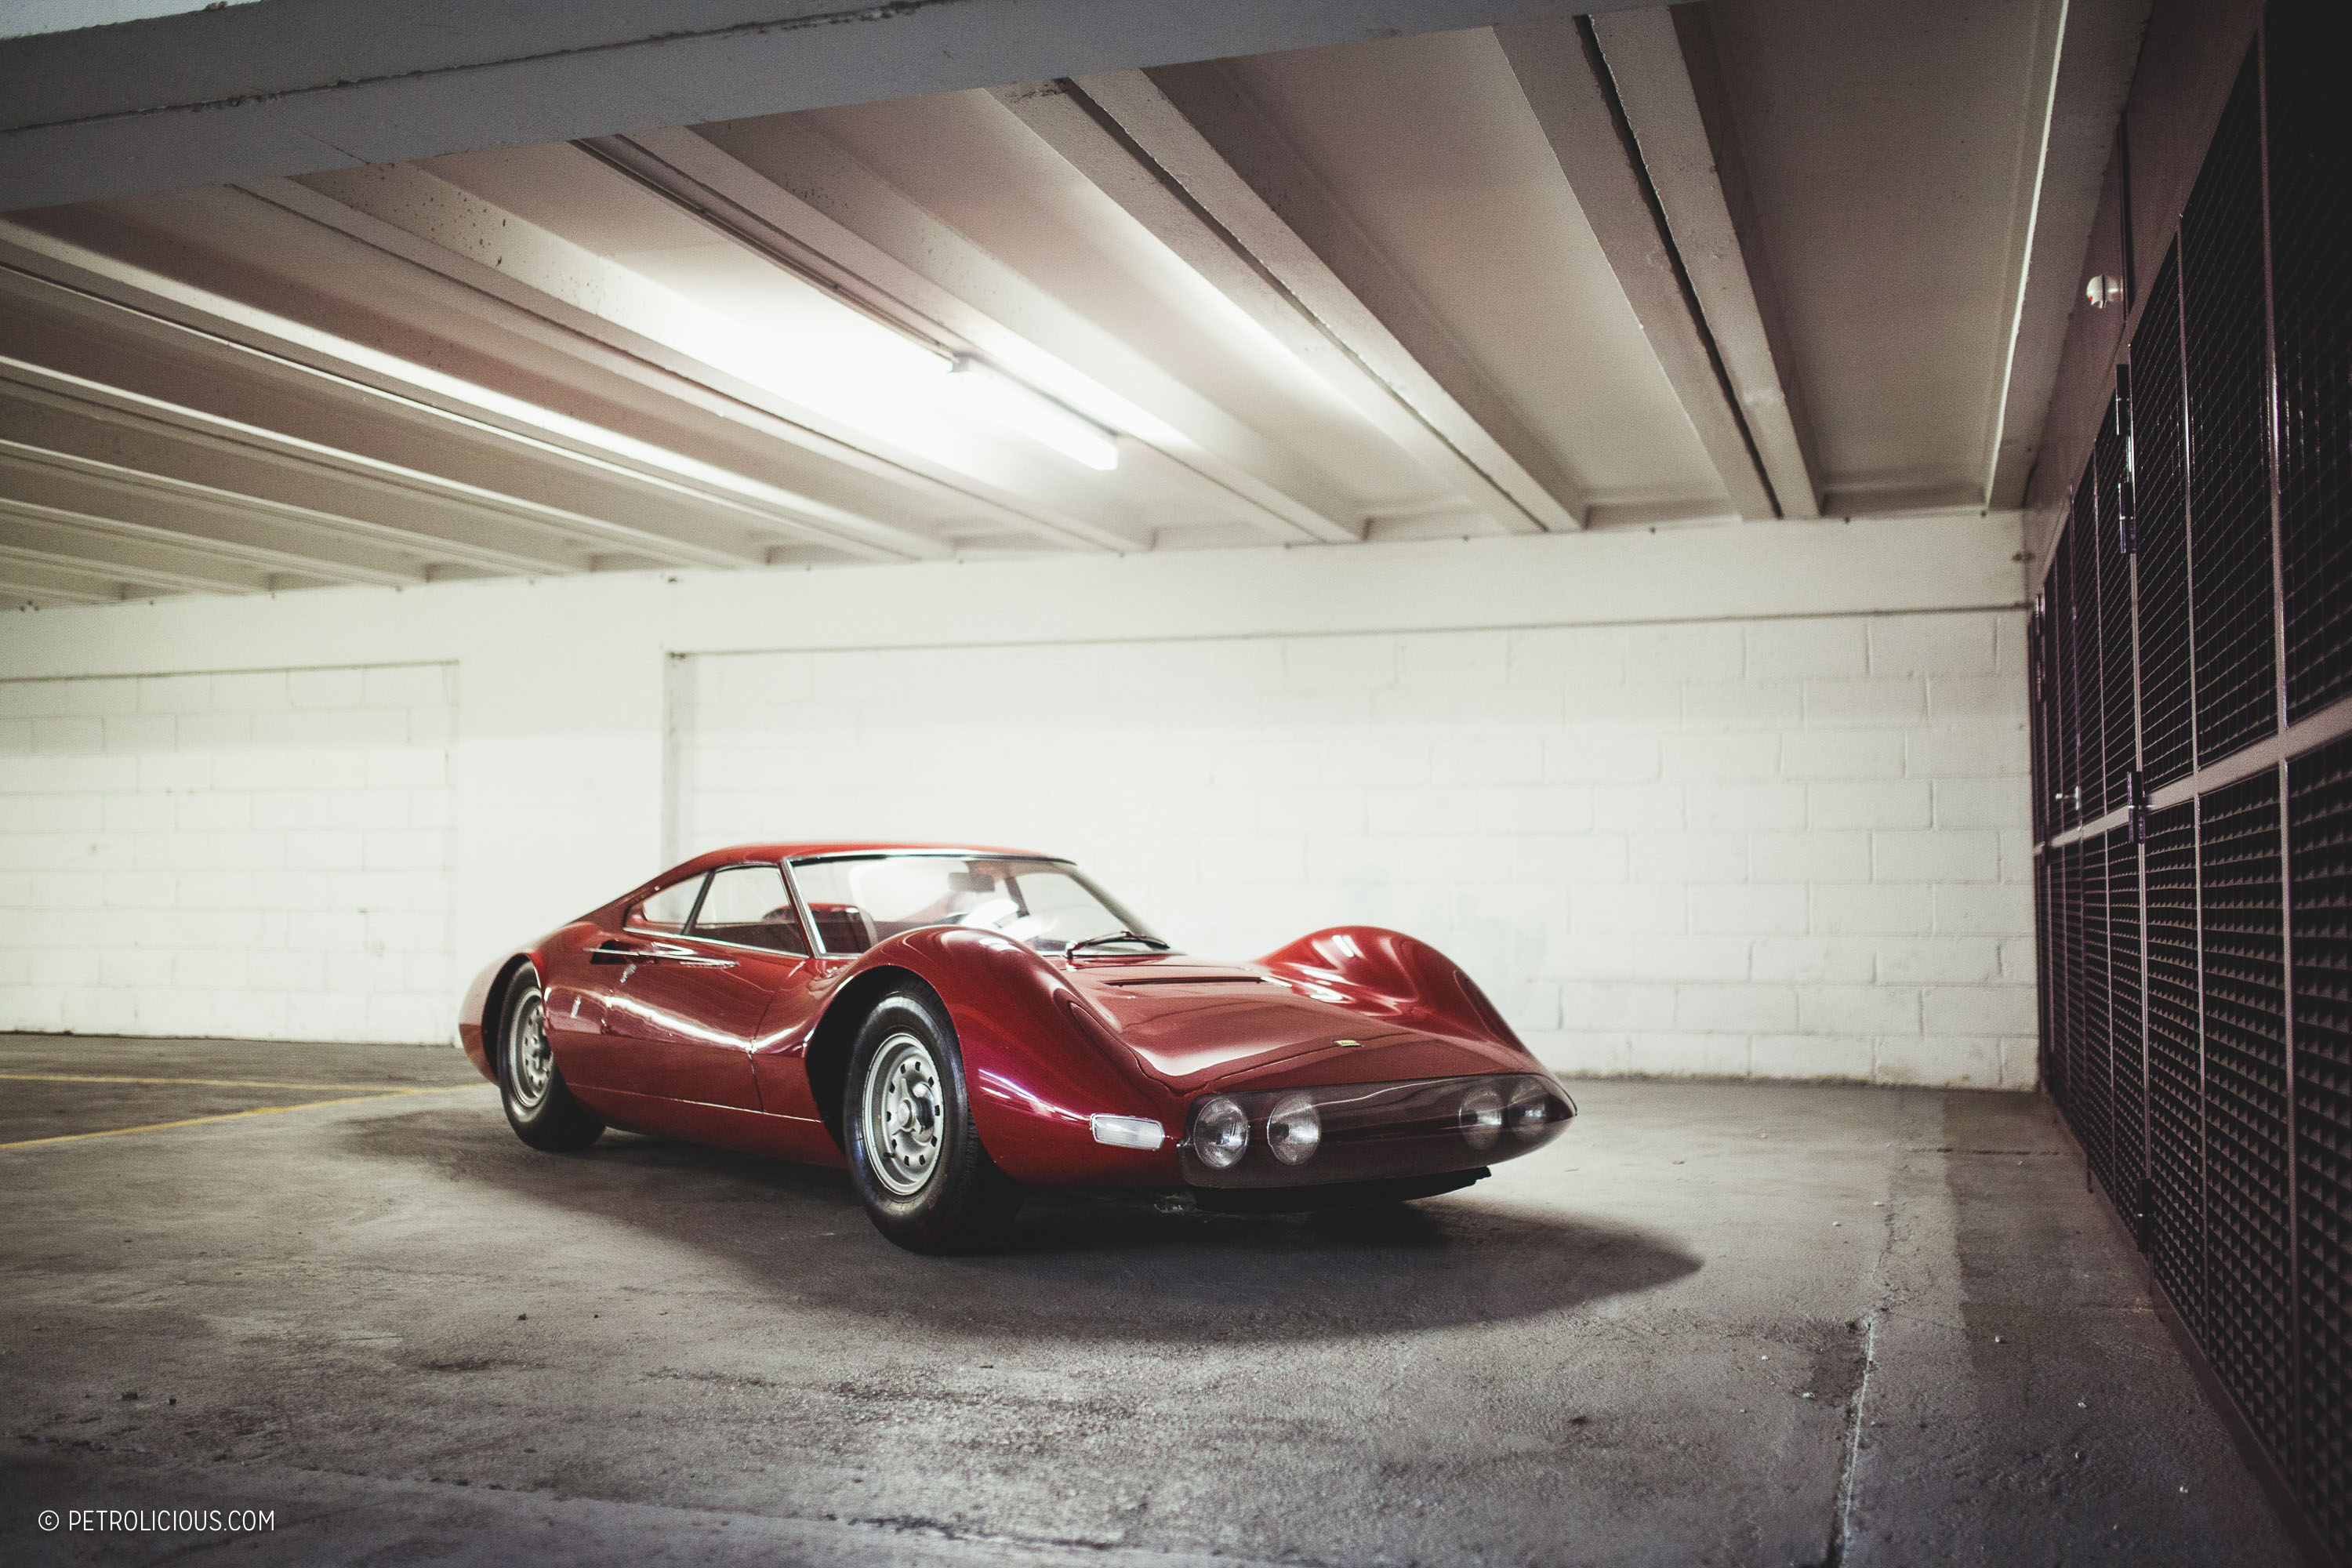 The Dino Prototype That Informed Decades Of Ferrari Design Is Coming Up For Sale